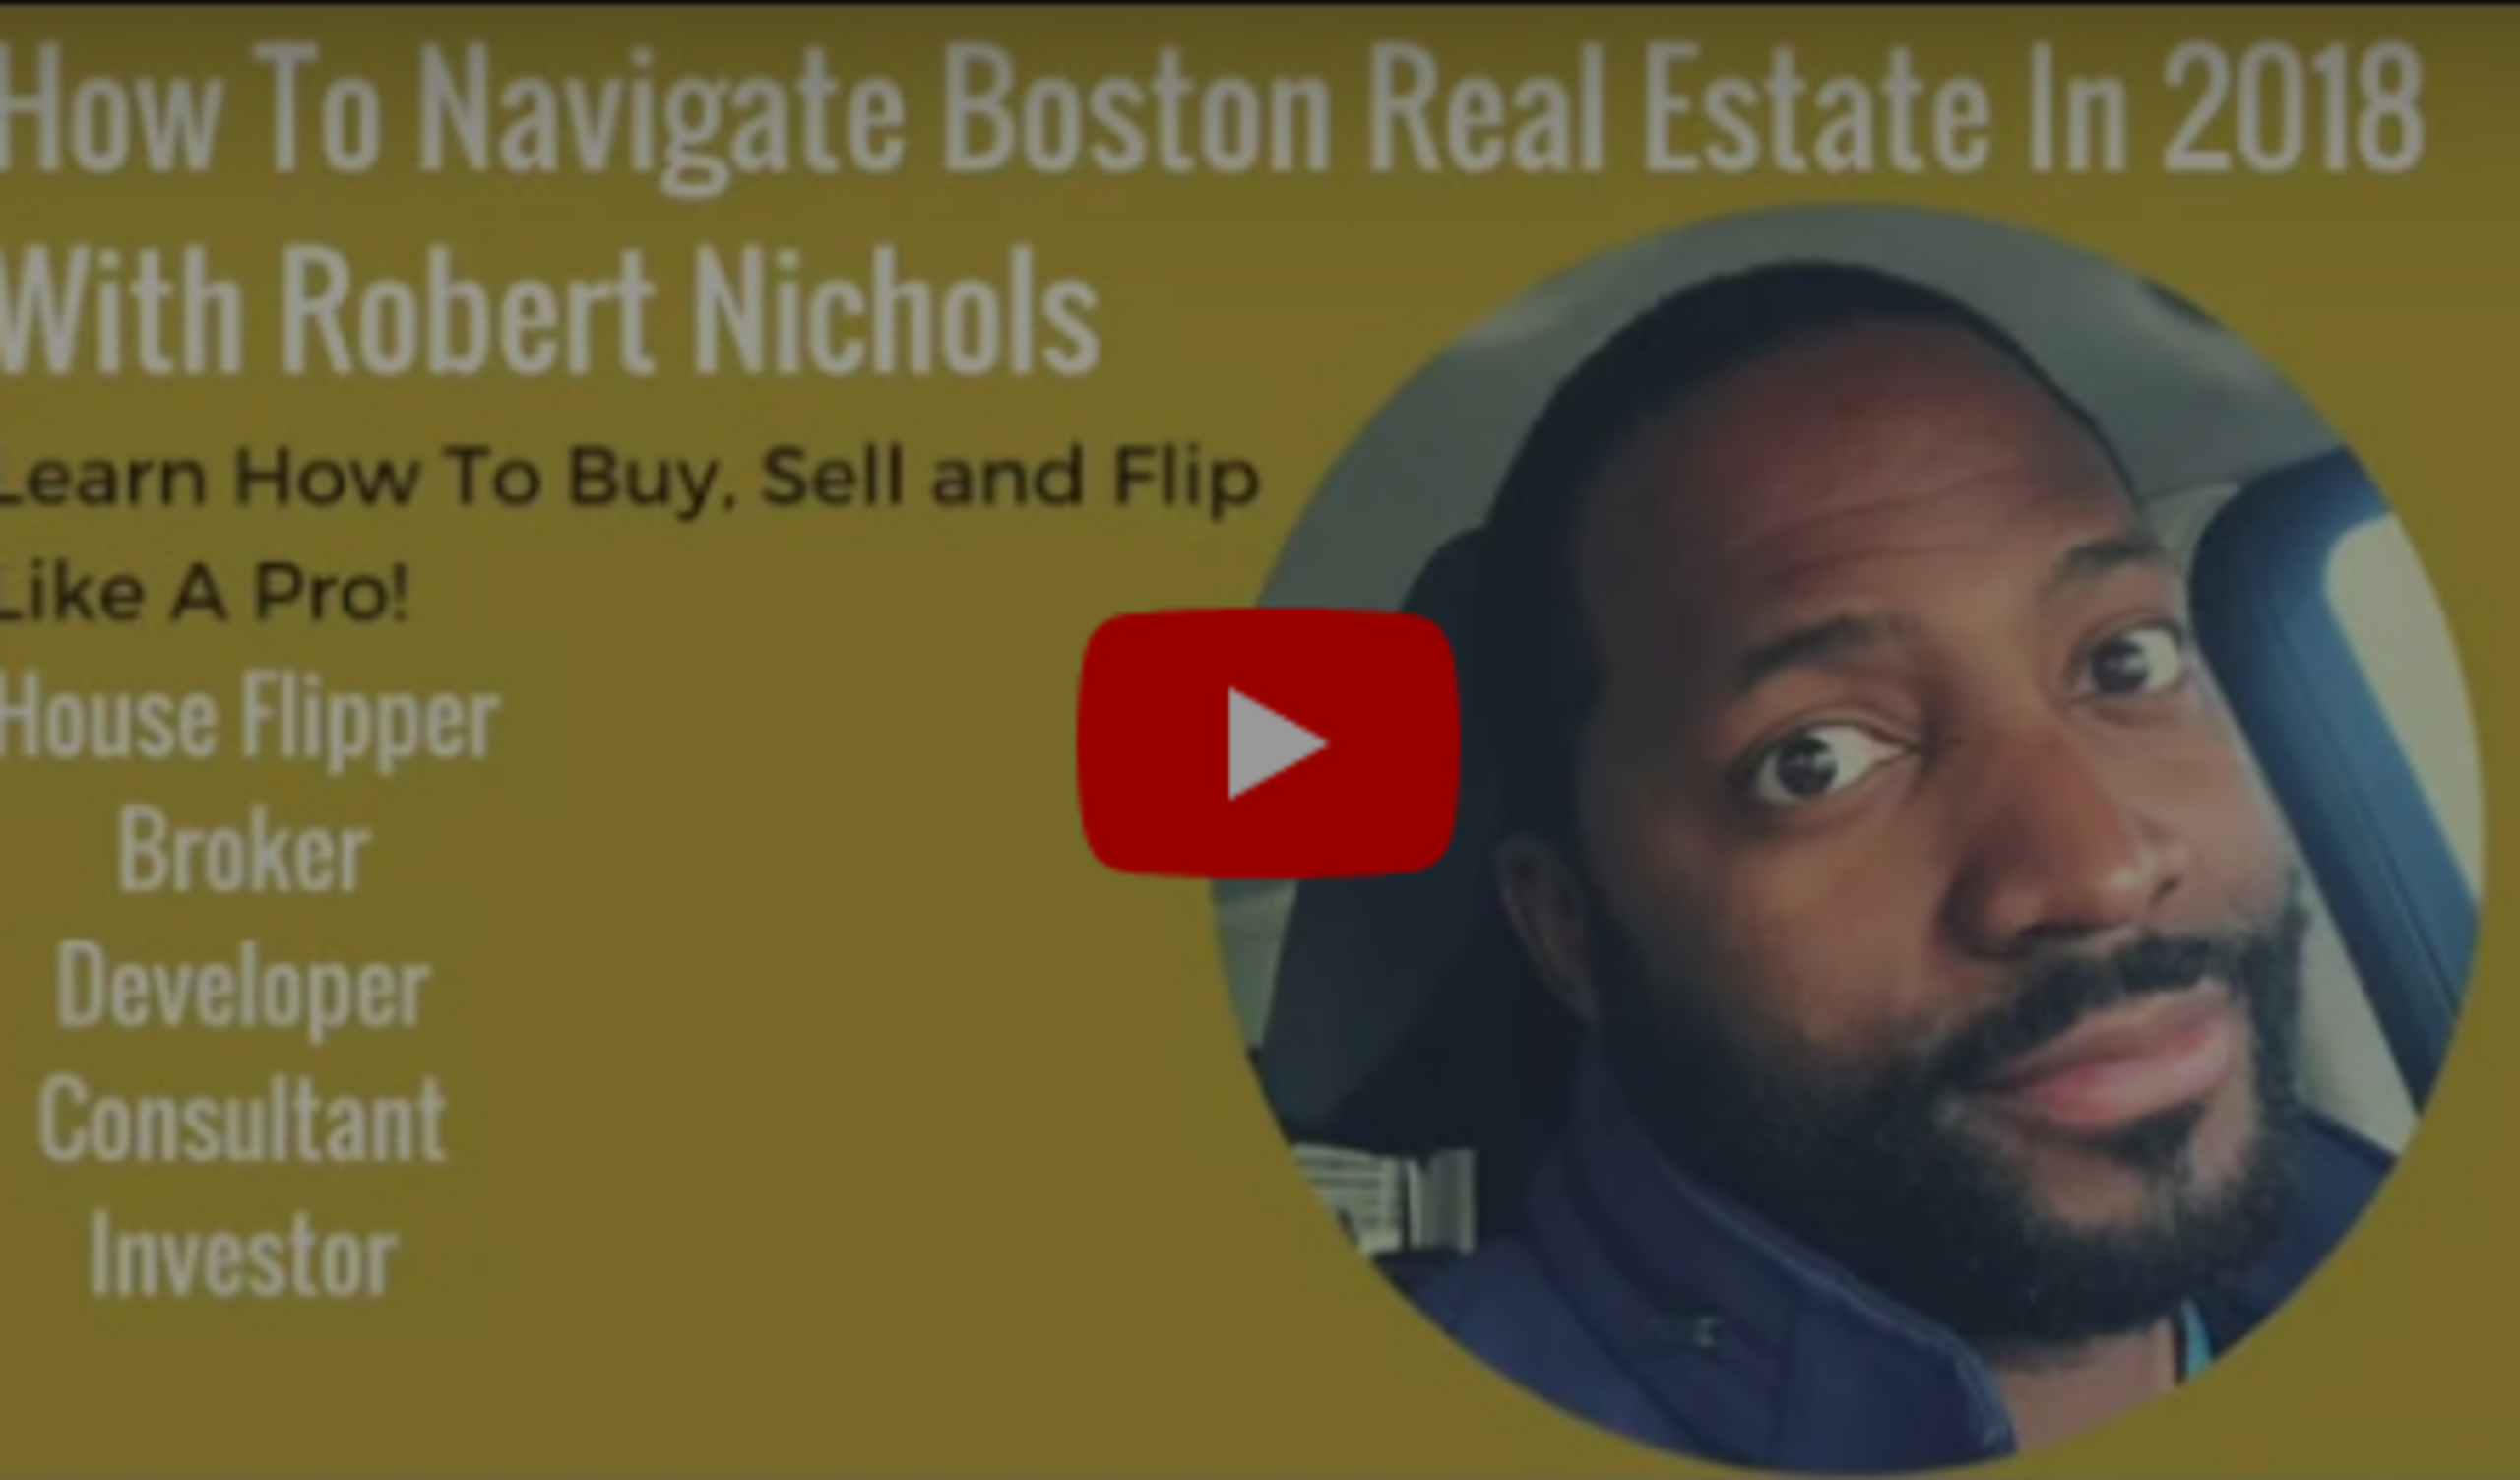 How To Navigate Boston Real Estate In 2018